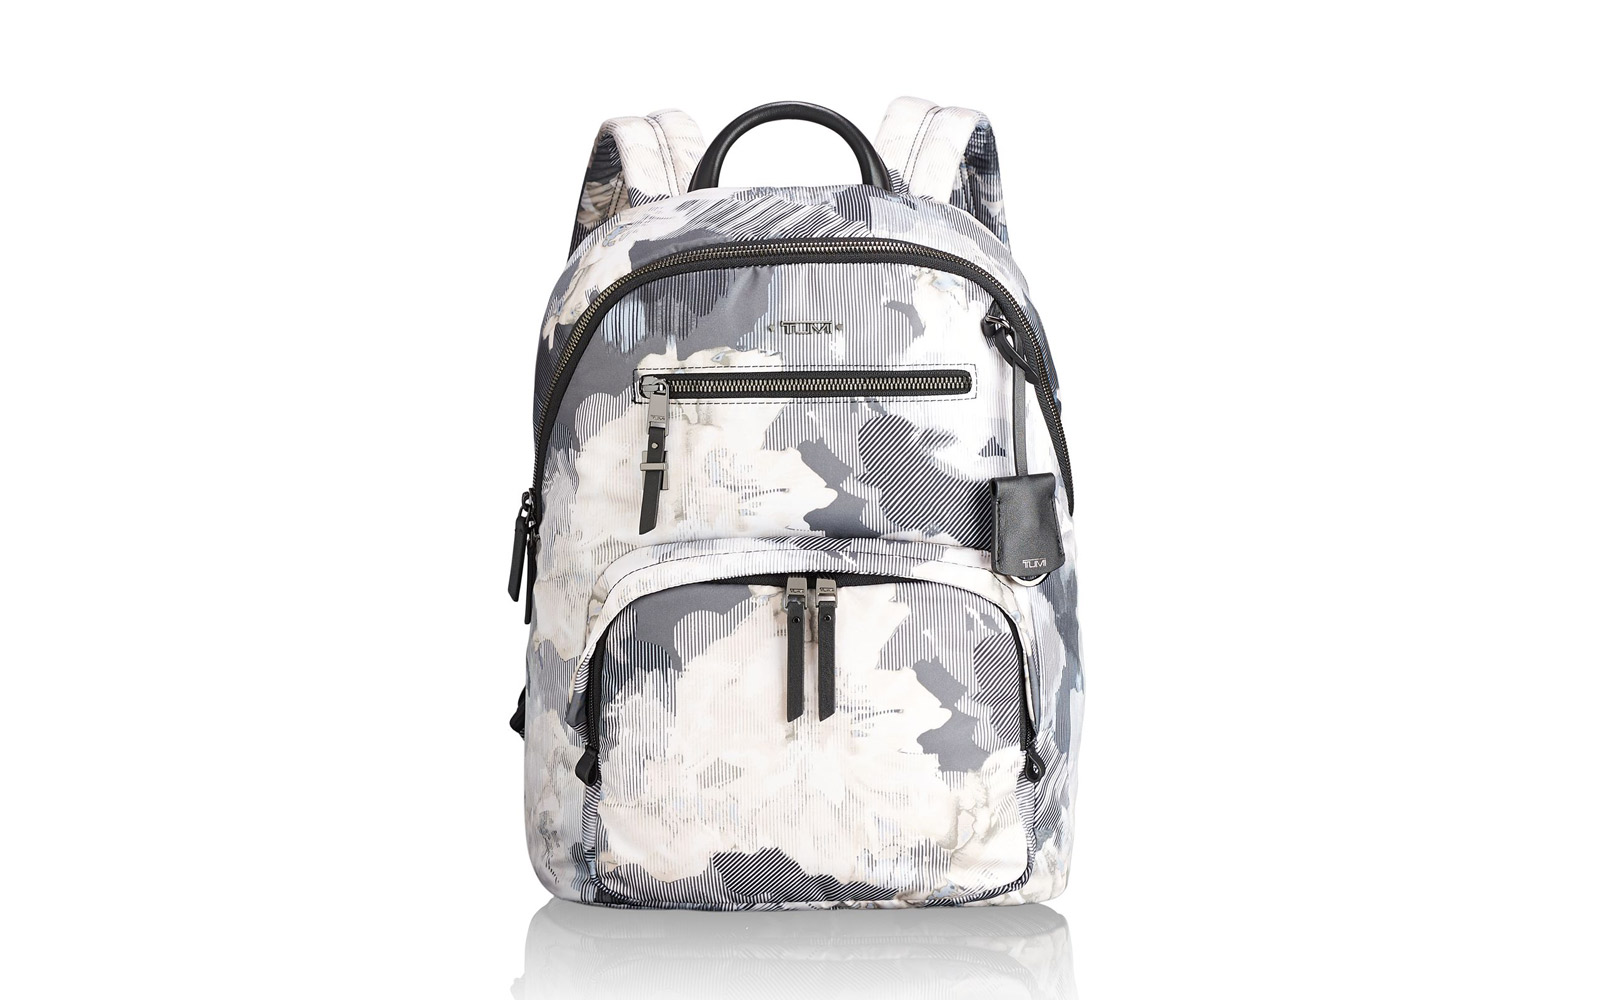 696984dff6 The Most Stylish Travel Backpacks For Women